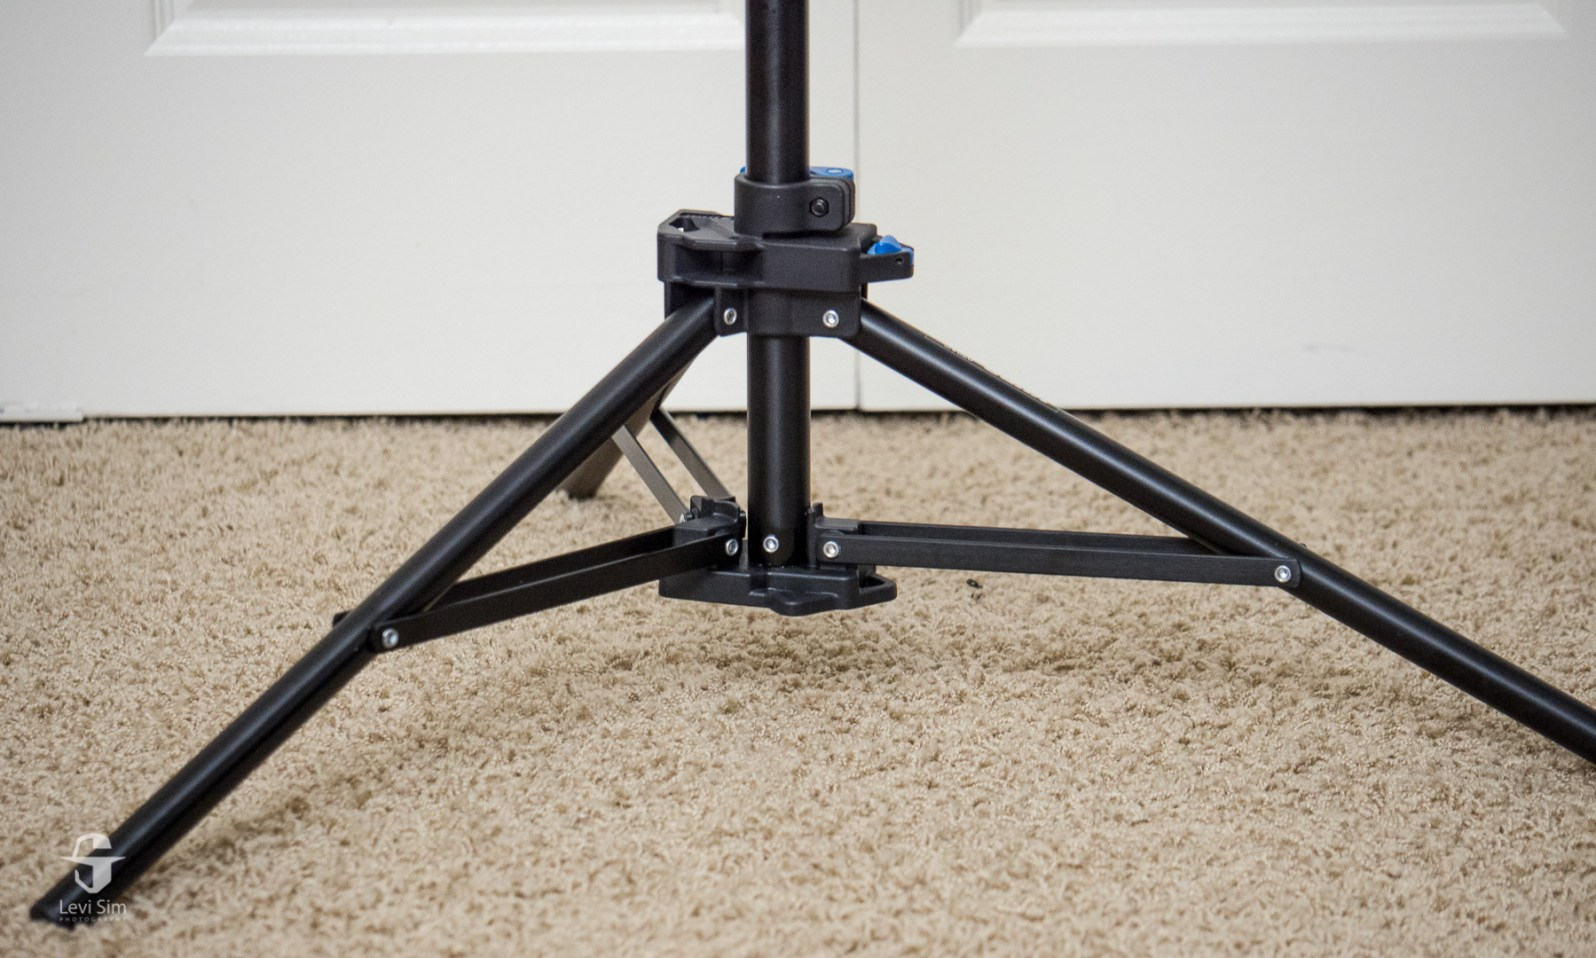 Make sure the leg stabilizers are horizontal to give the legs the widest possible stance.